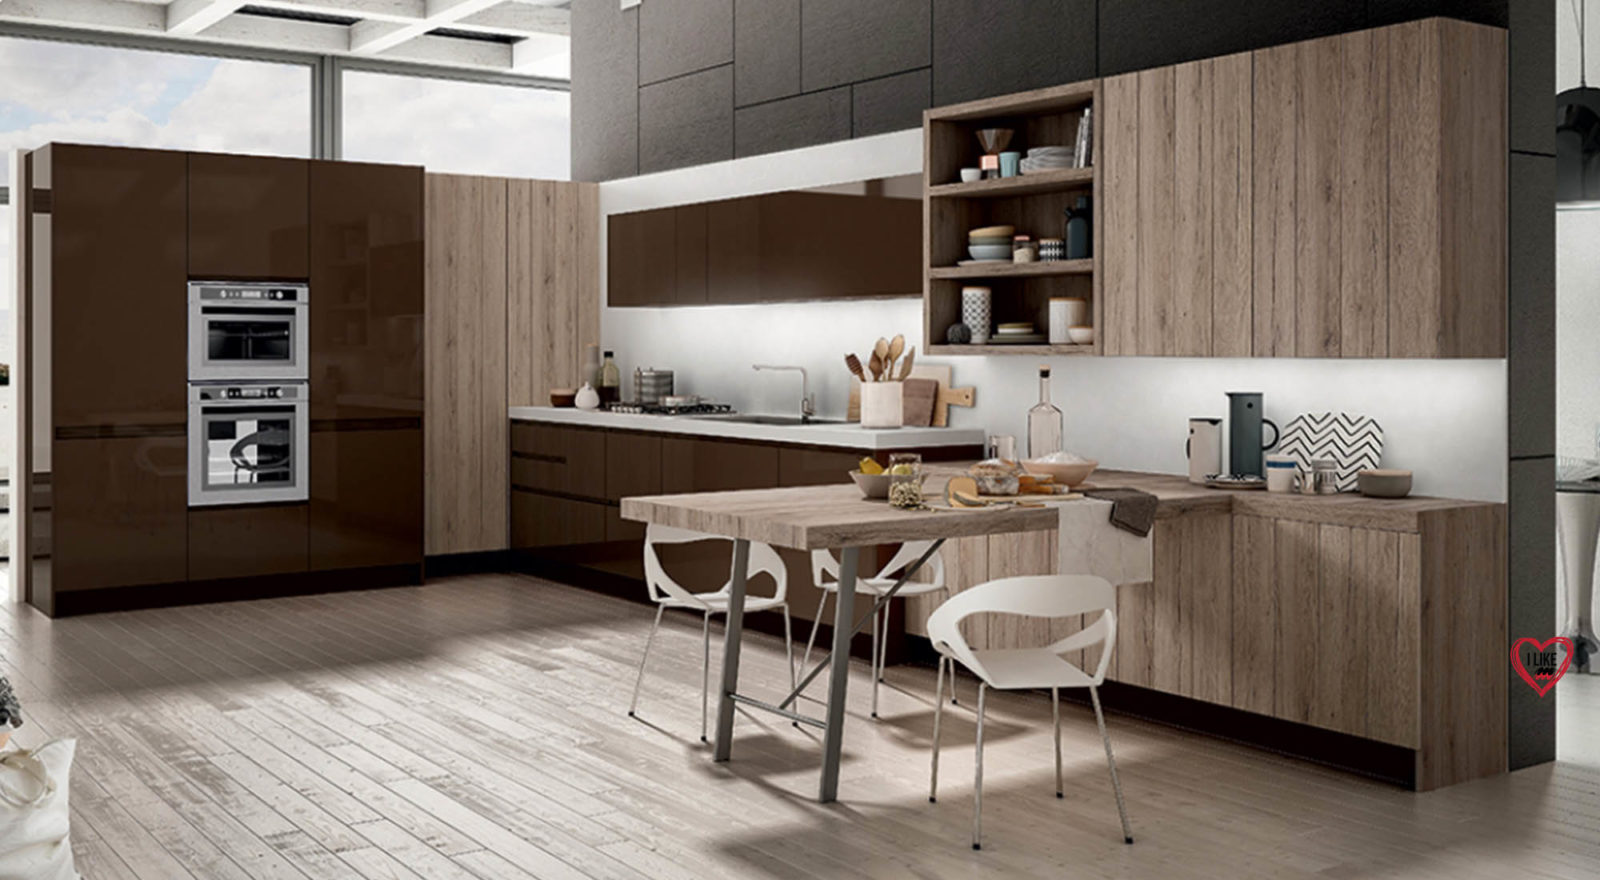 Cucine moderne ad angolo awesome cucina blu in frassino - Cucine moderne ad angolo con finestra ...